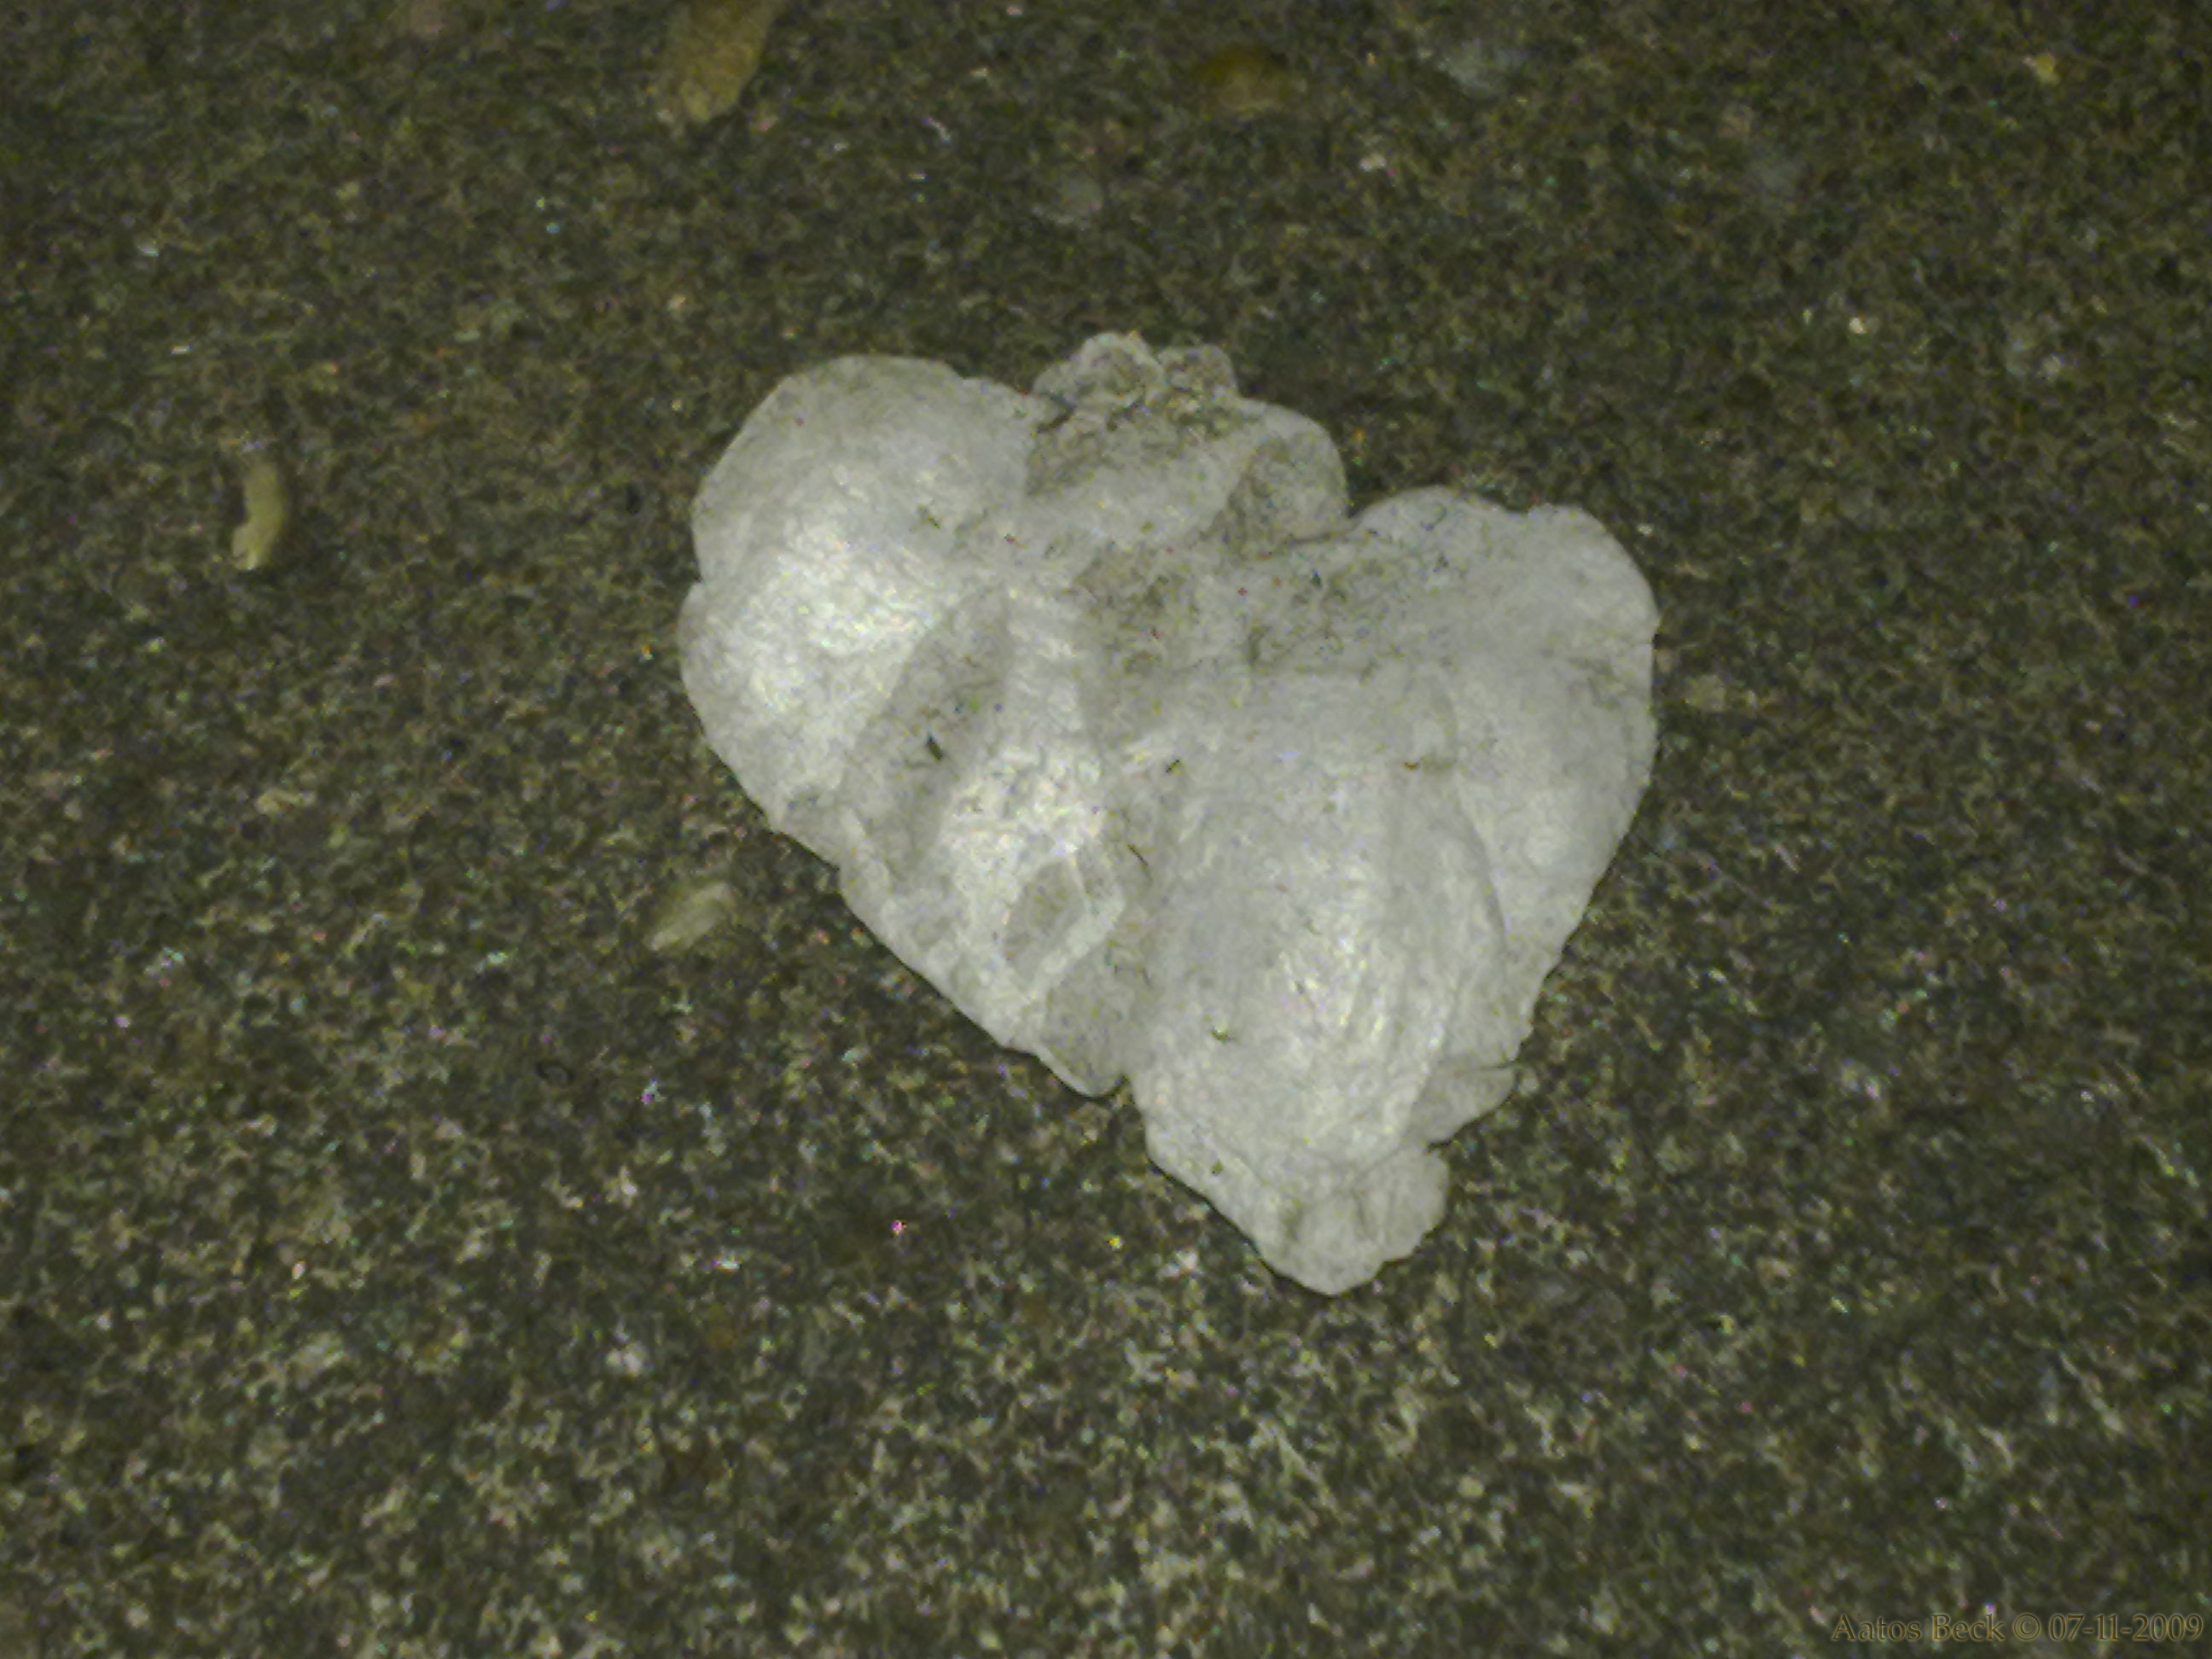 Two Hearts as solid as Stone 2 by Aatos Beck © 07-11-2009